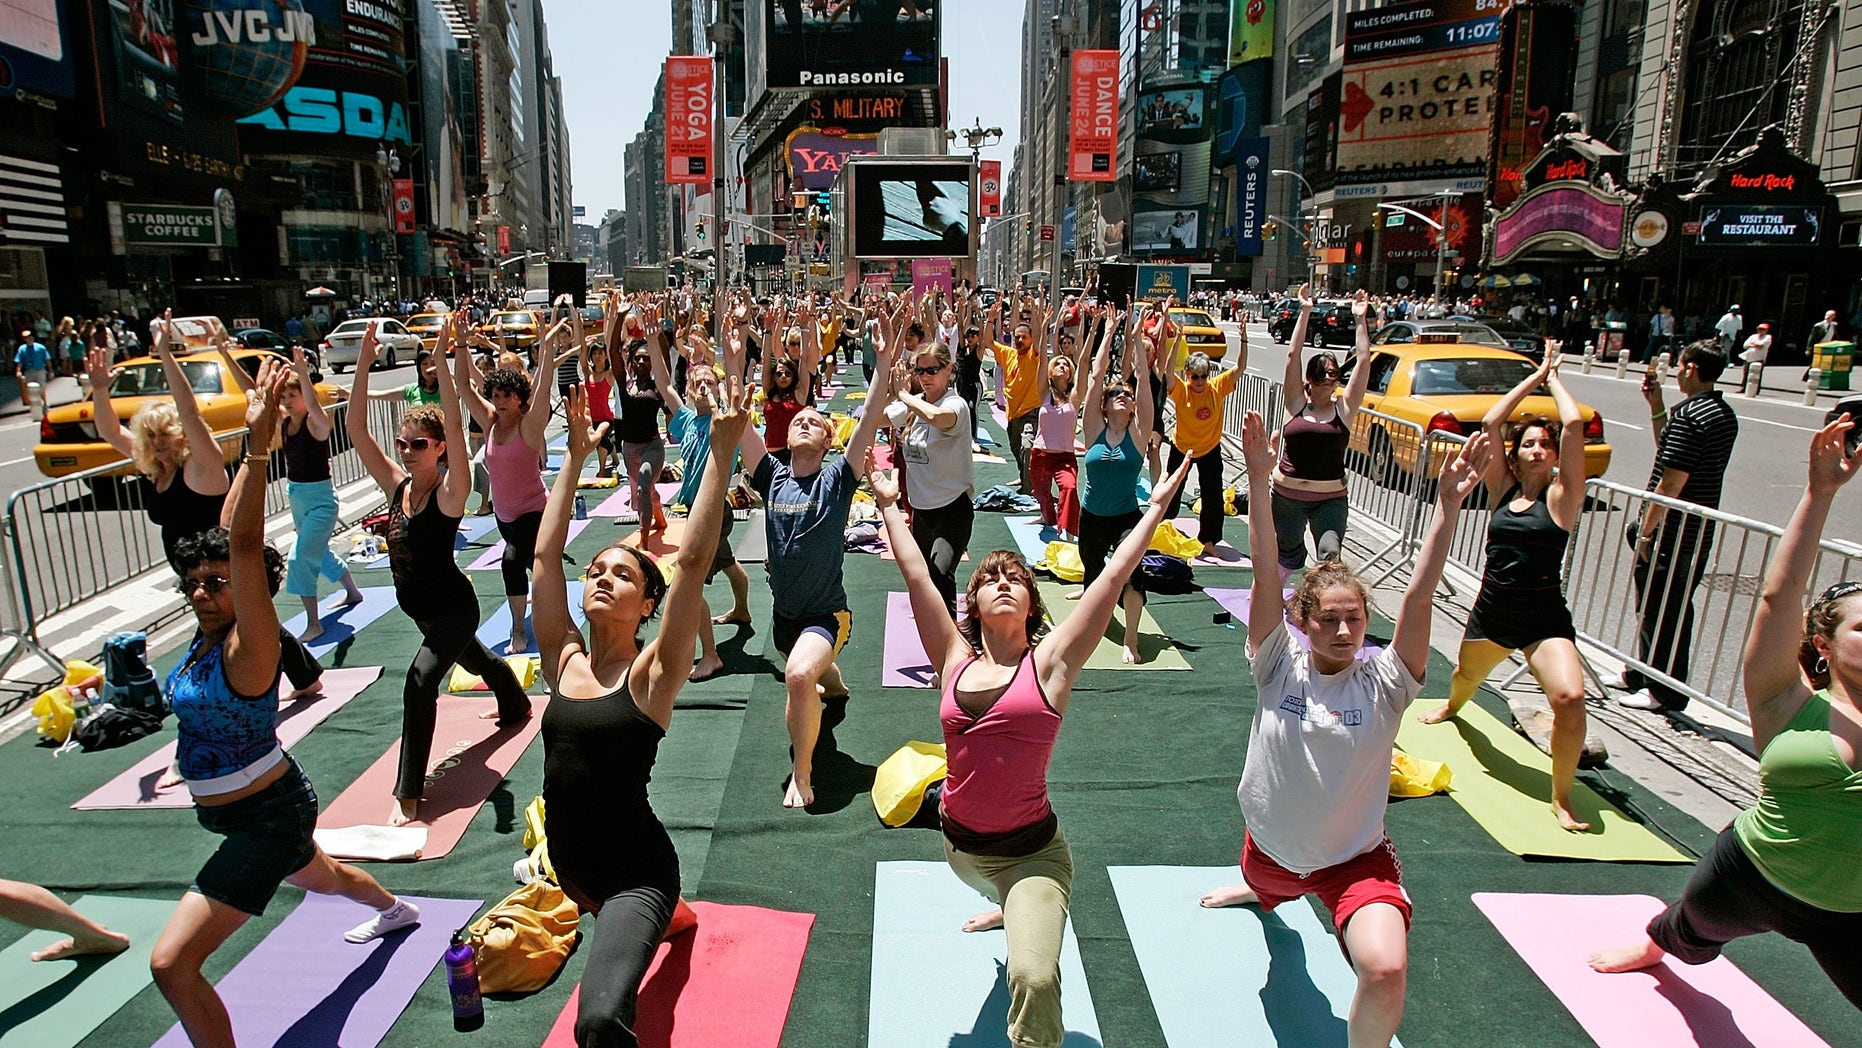 Yoga enthusiasts from across the country unite in Times Square as taxis drive past in New York City.